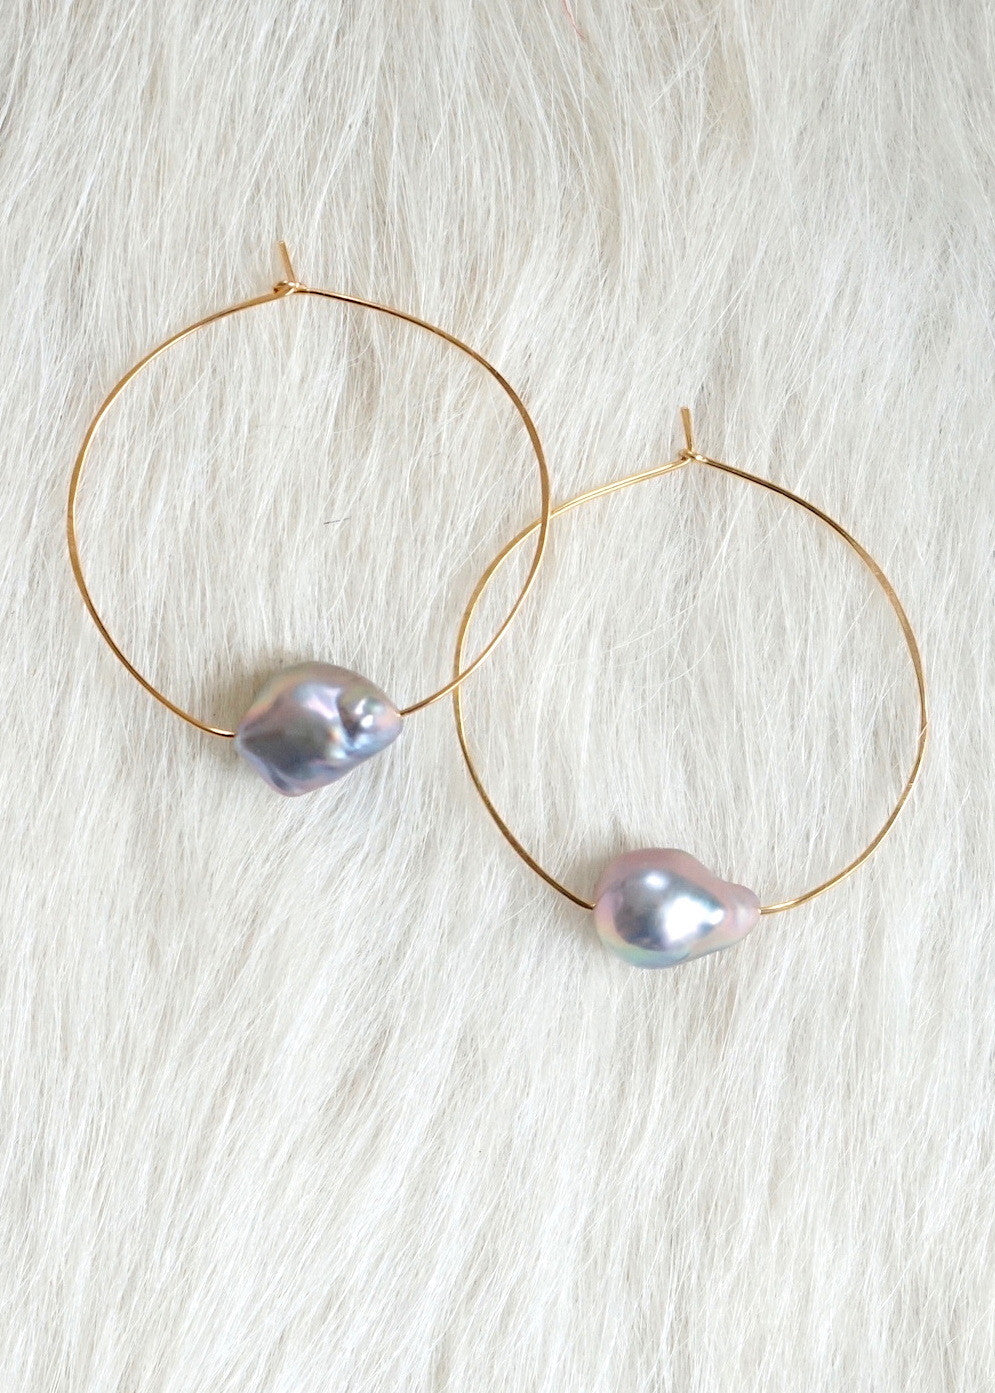 Designs by Alina Saturn baroque pearl earrings 14K pink gold